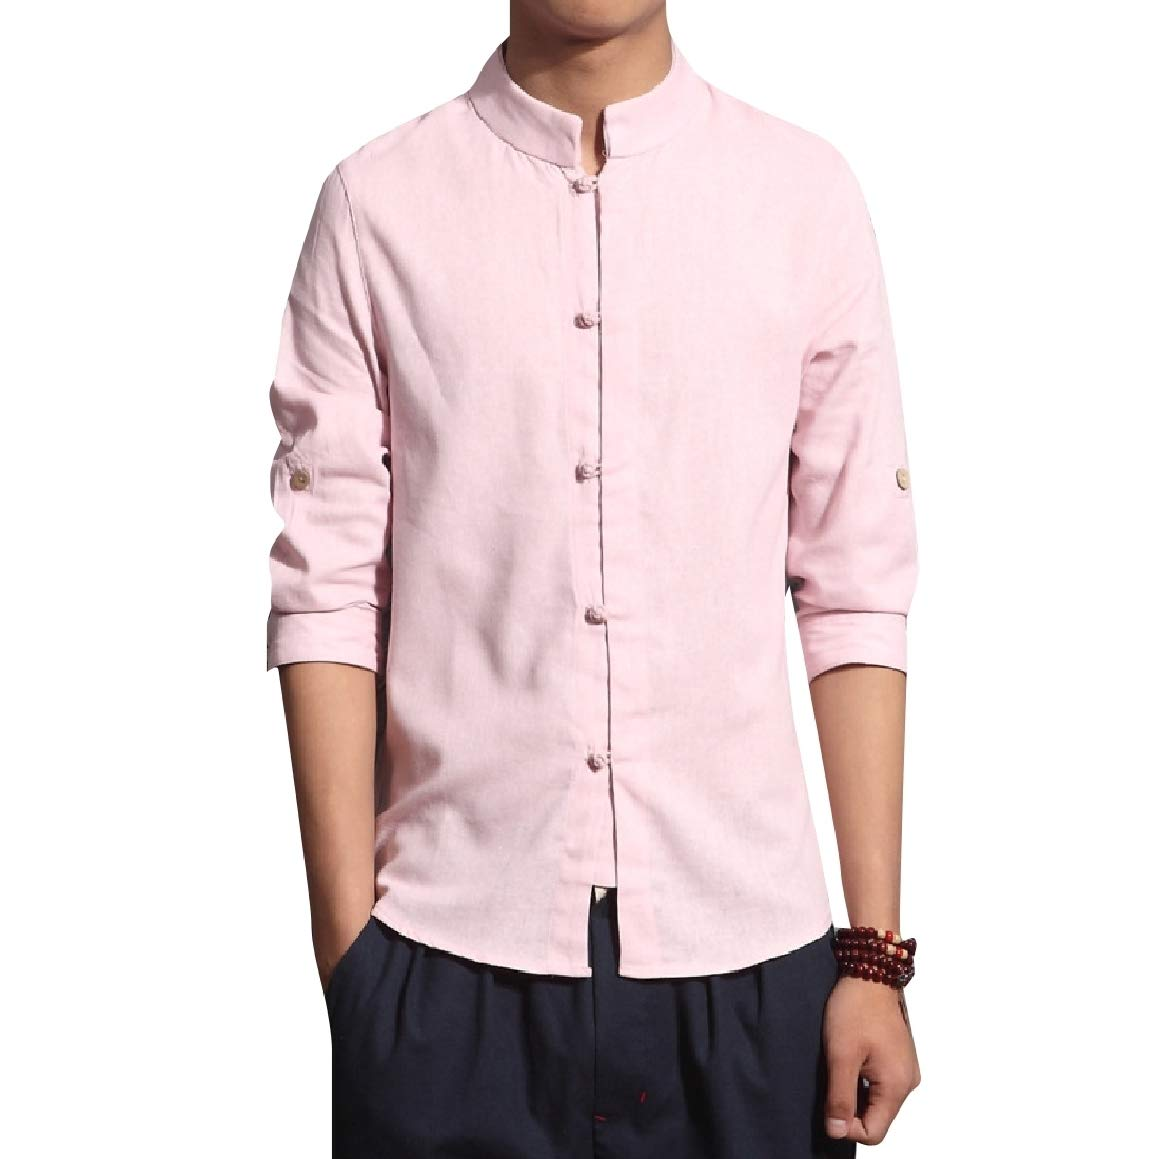 RomantcMen Linen Oversize Chinese Style Pure Color Tee Polo Shirt